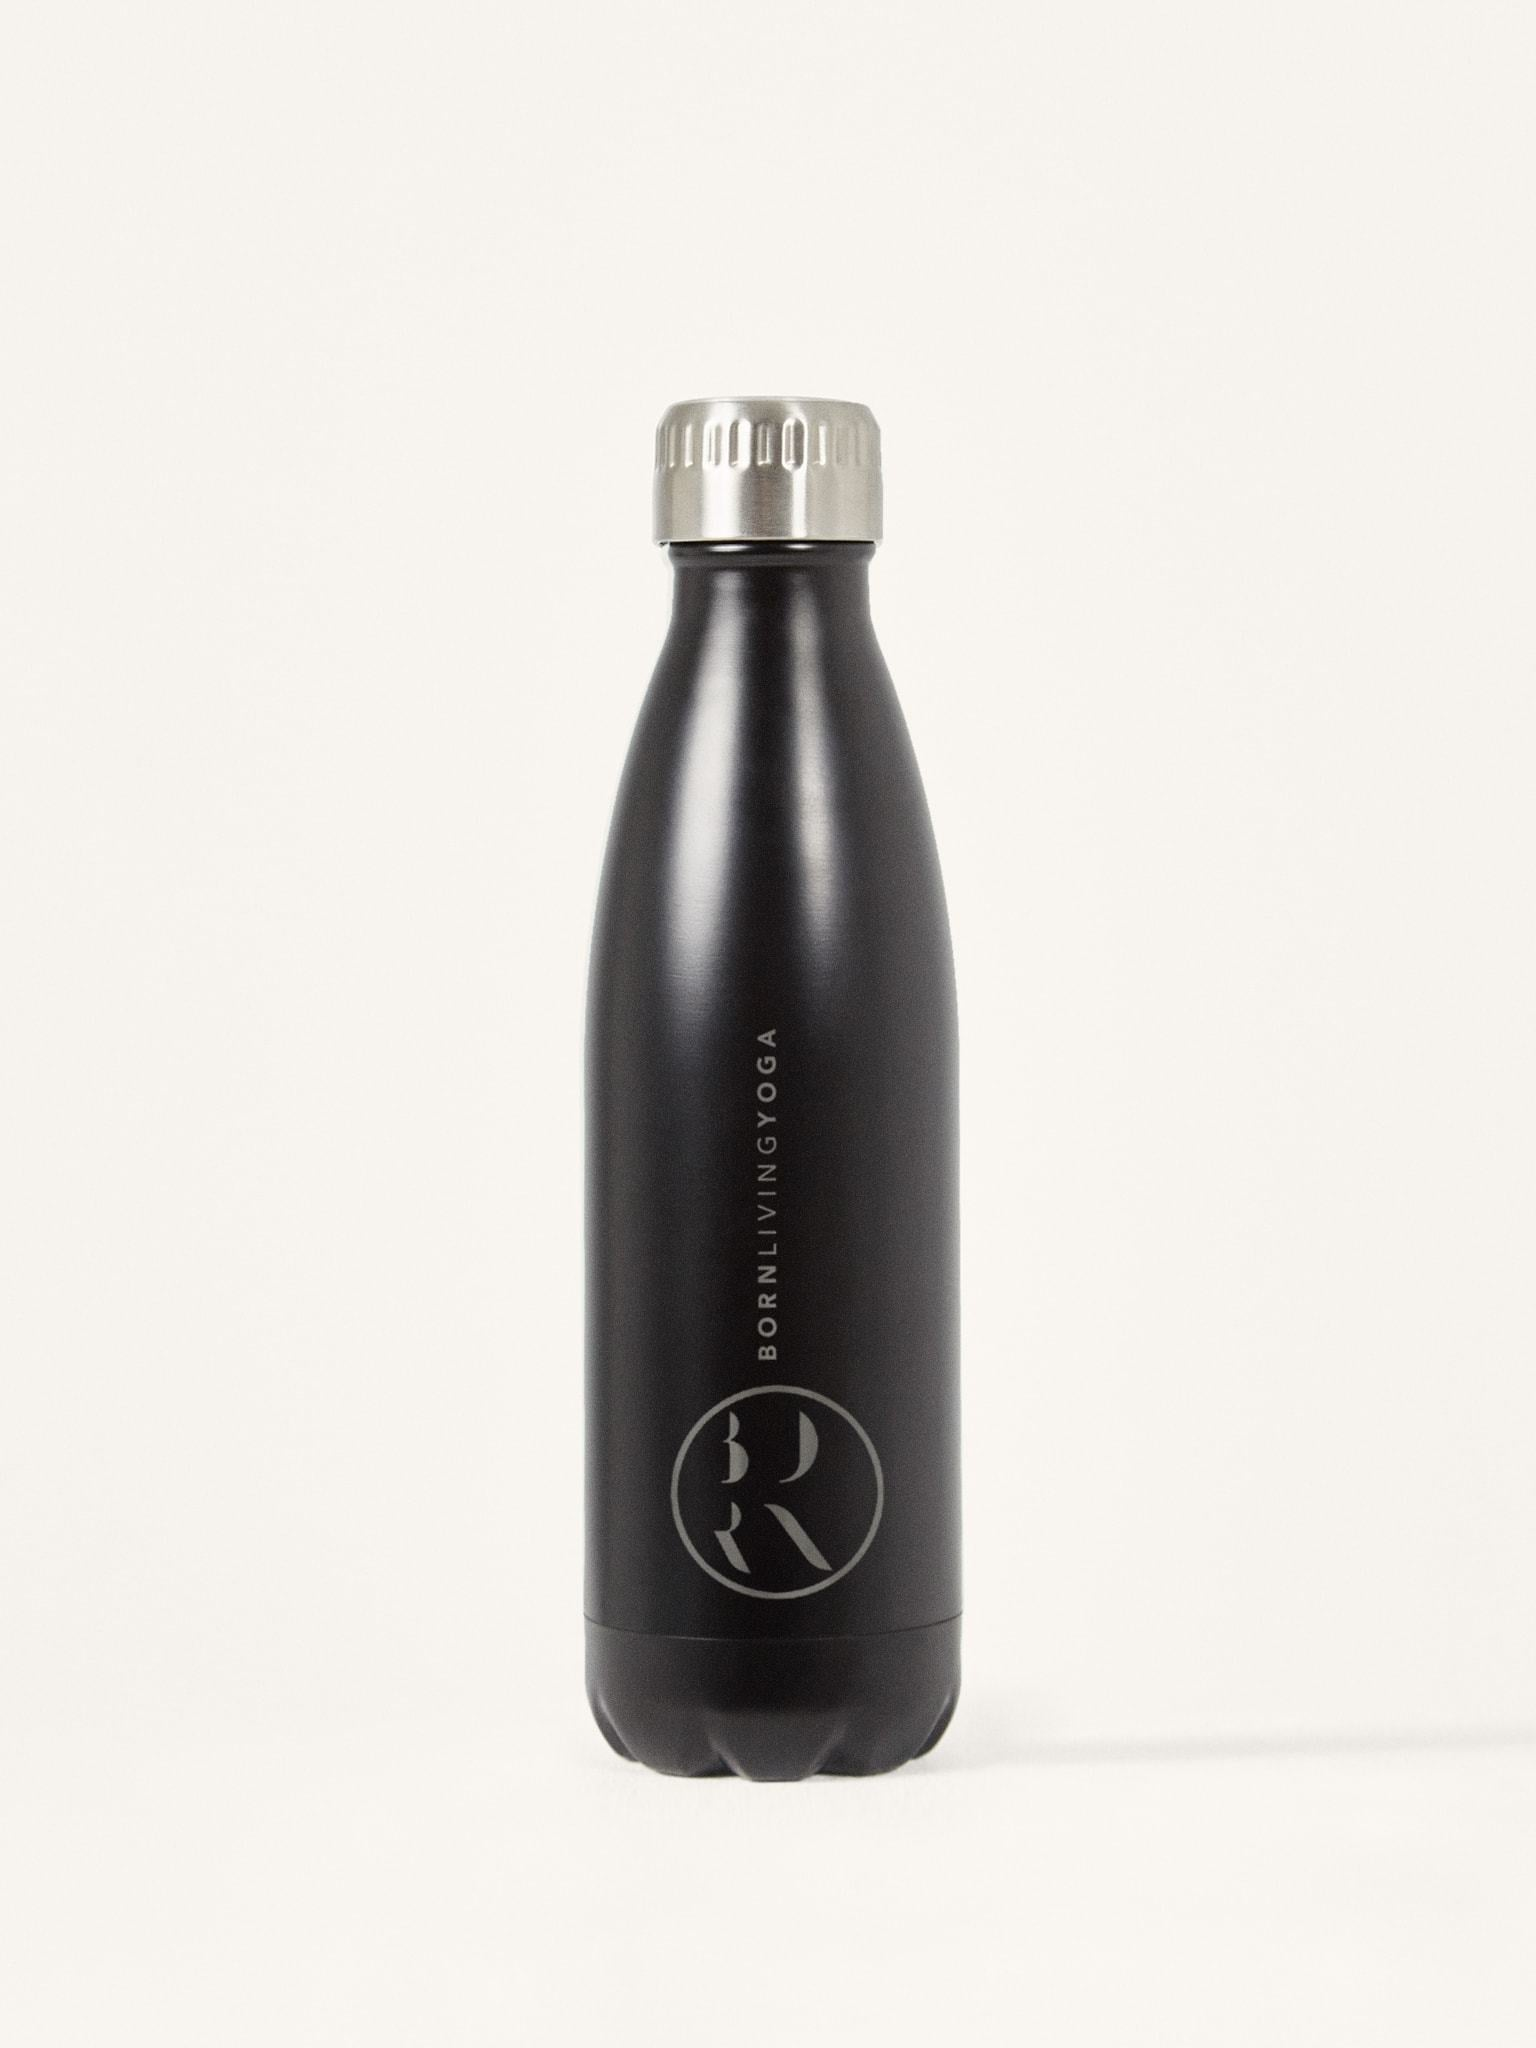 Born Bottle Black